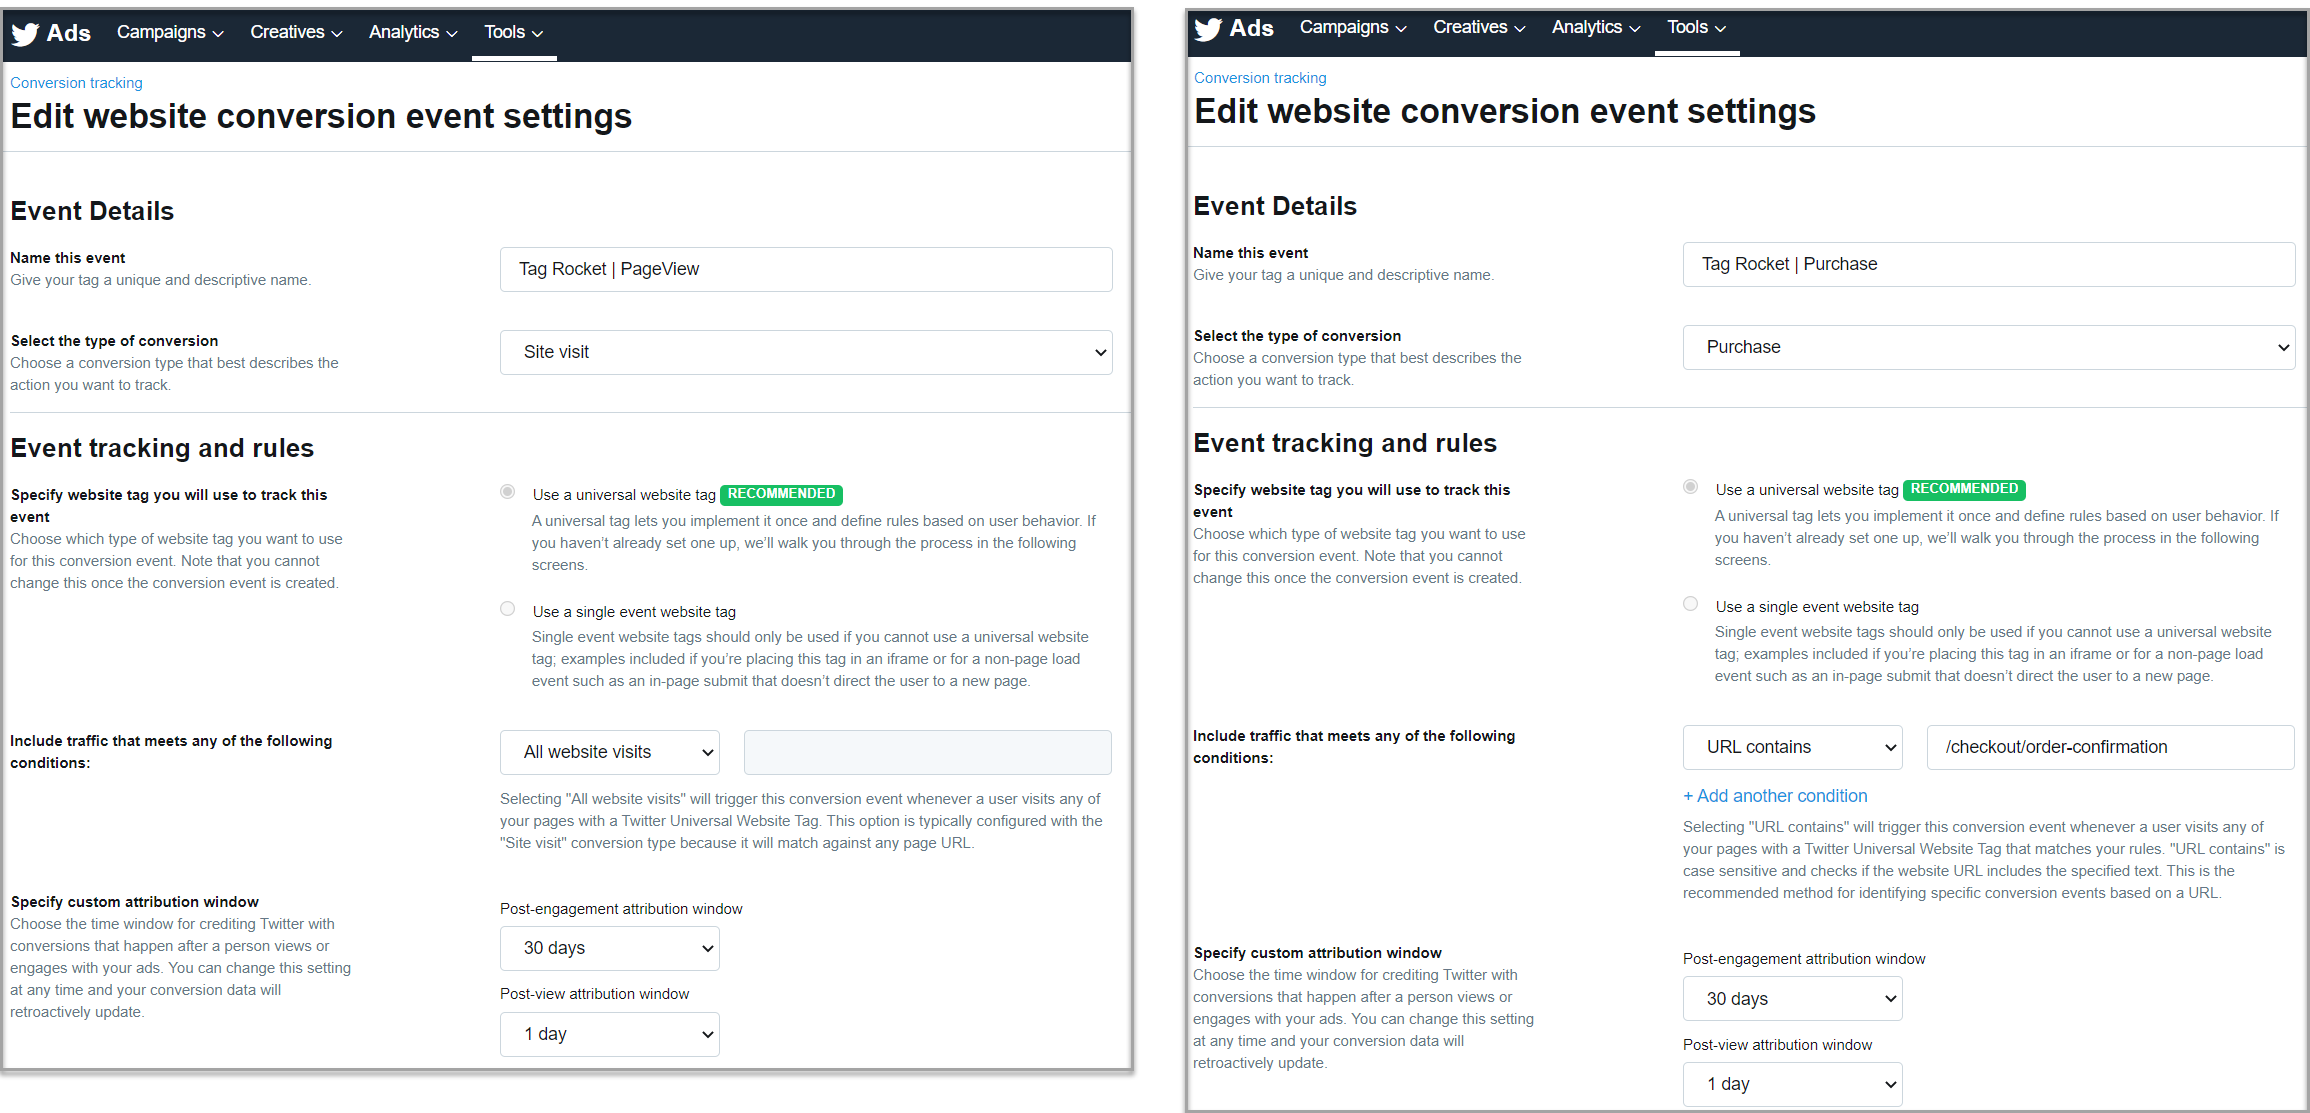 Purchase and Site Visit Conversion Event Setup For Twitter